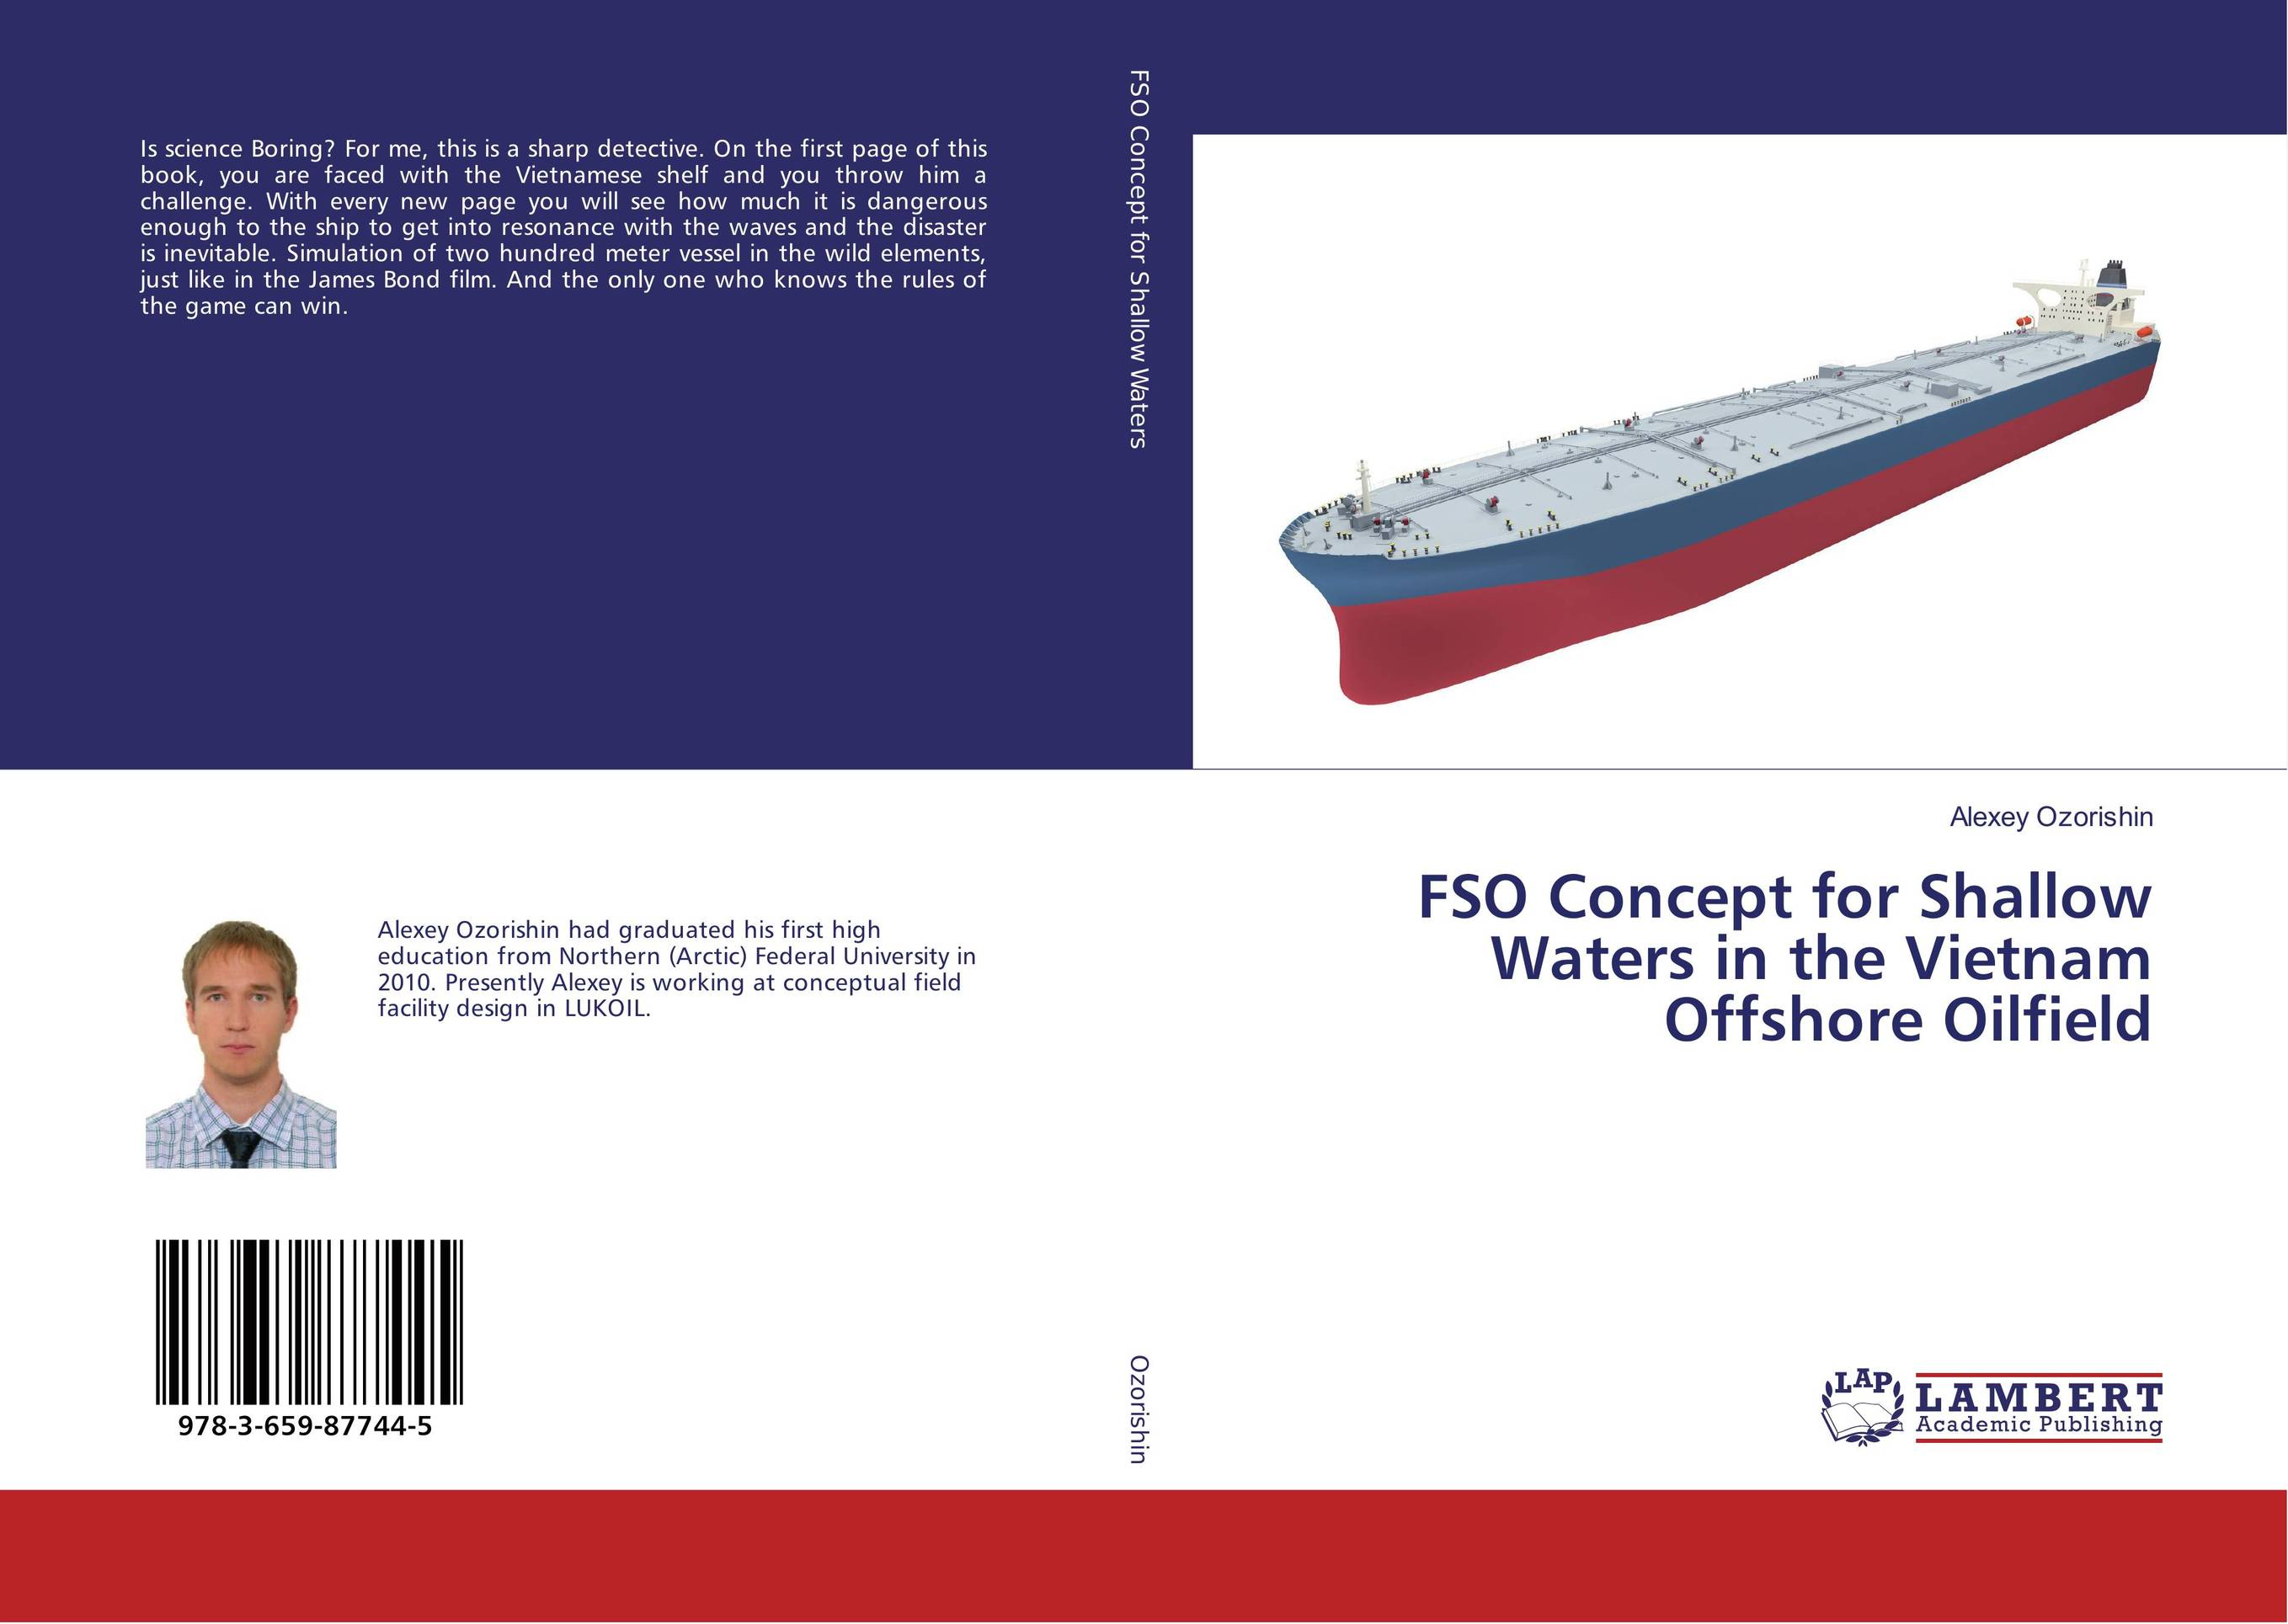 FSO Concept for Shallow Waters in the Vietnam Offshore Oilfield michael jacksons this is it cd page 1